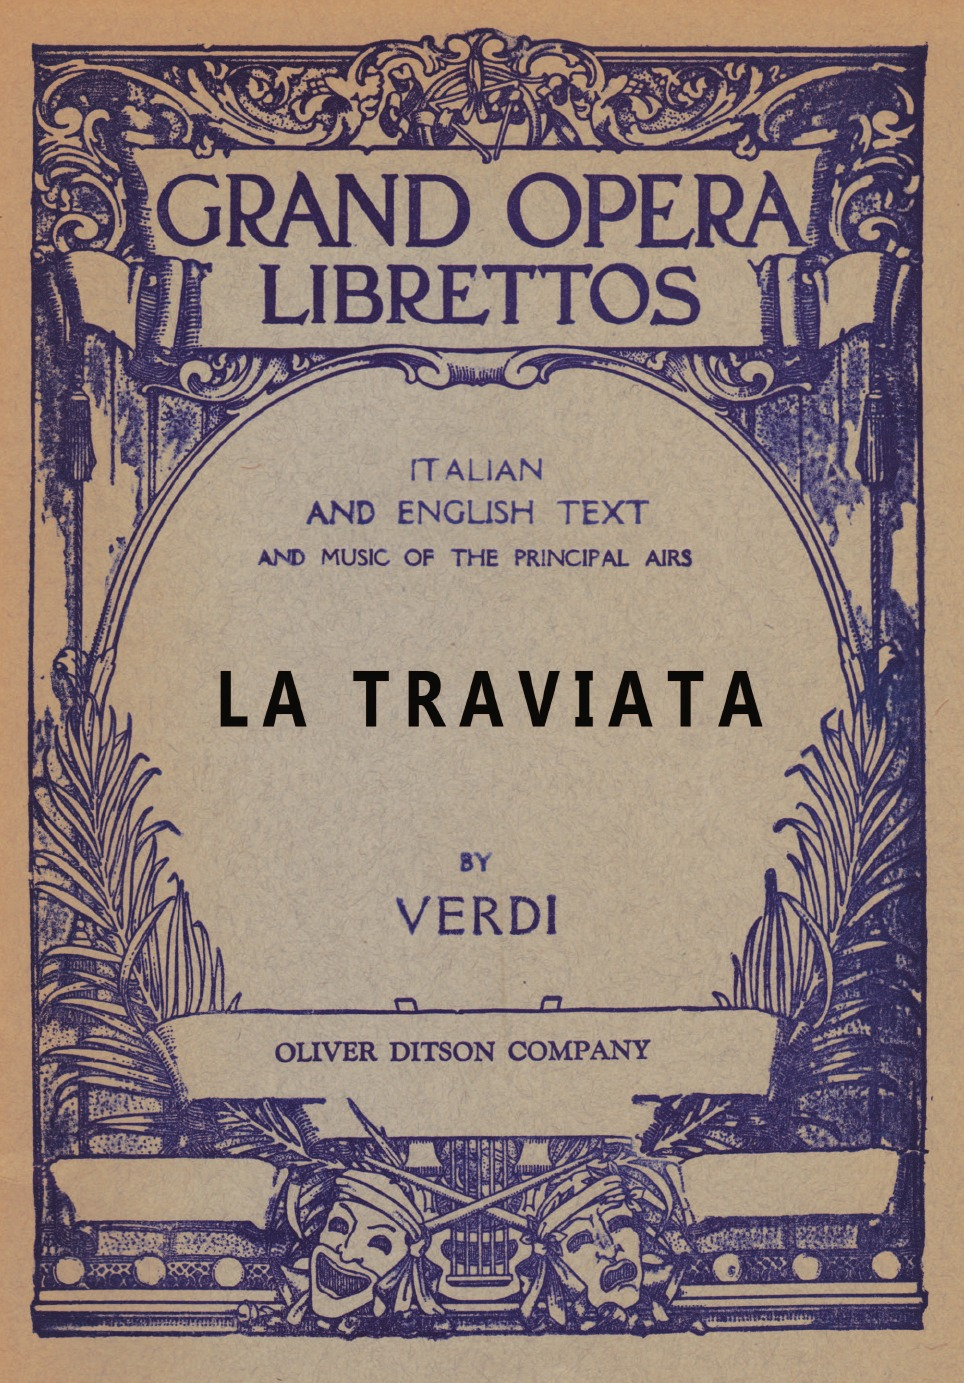 Francesco Maria Piave, T. T. Barker La Traviata. Libretto, Italian and English Text and Music of the Principal Airs giuseppe verdi ein maskenball un ballo in maschera